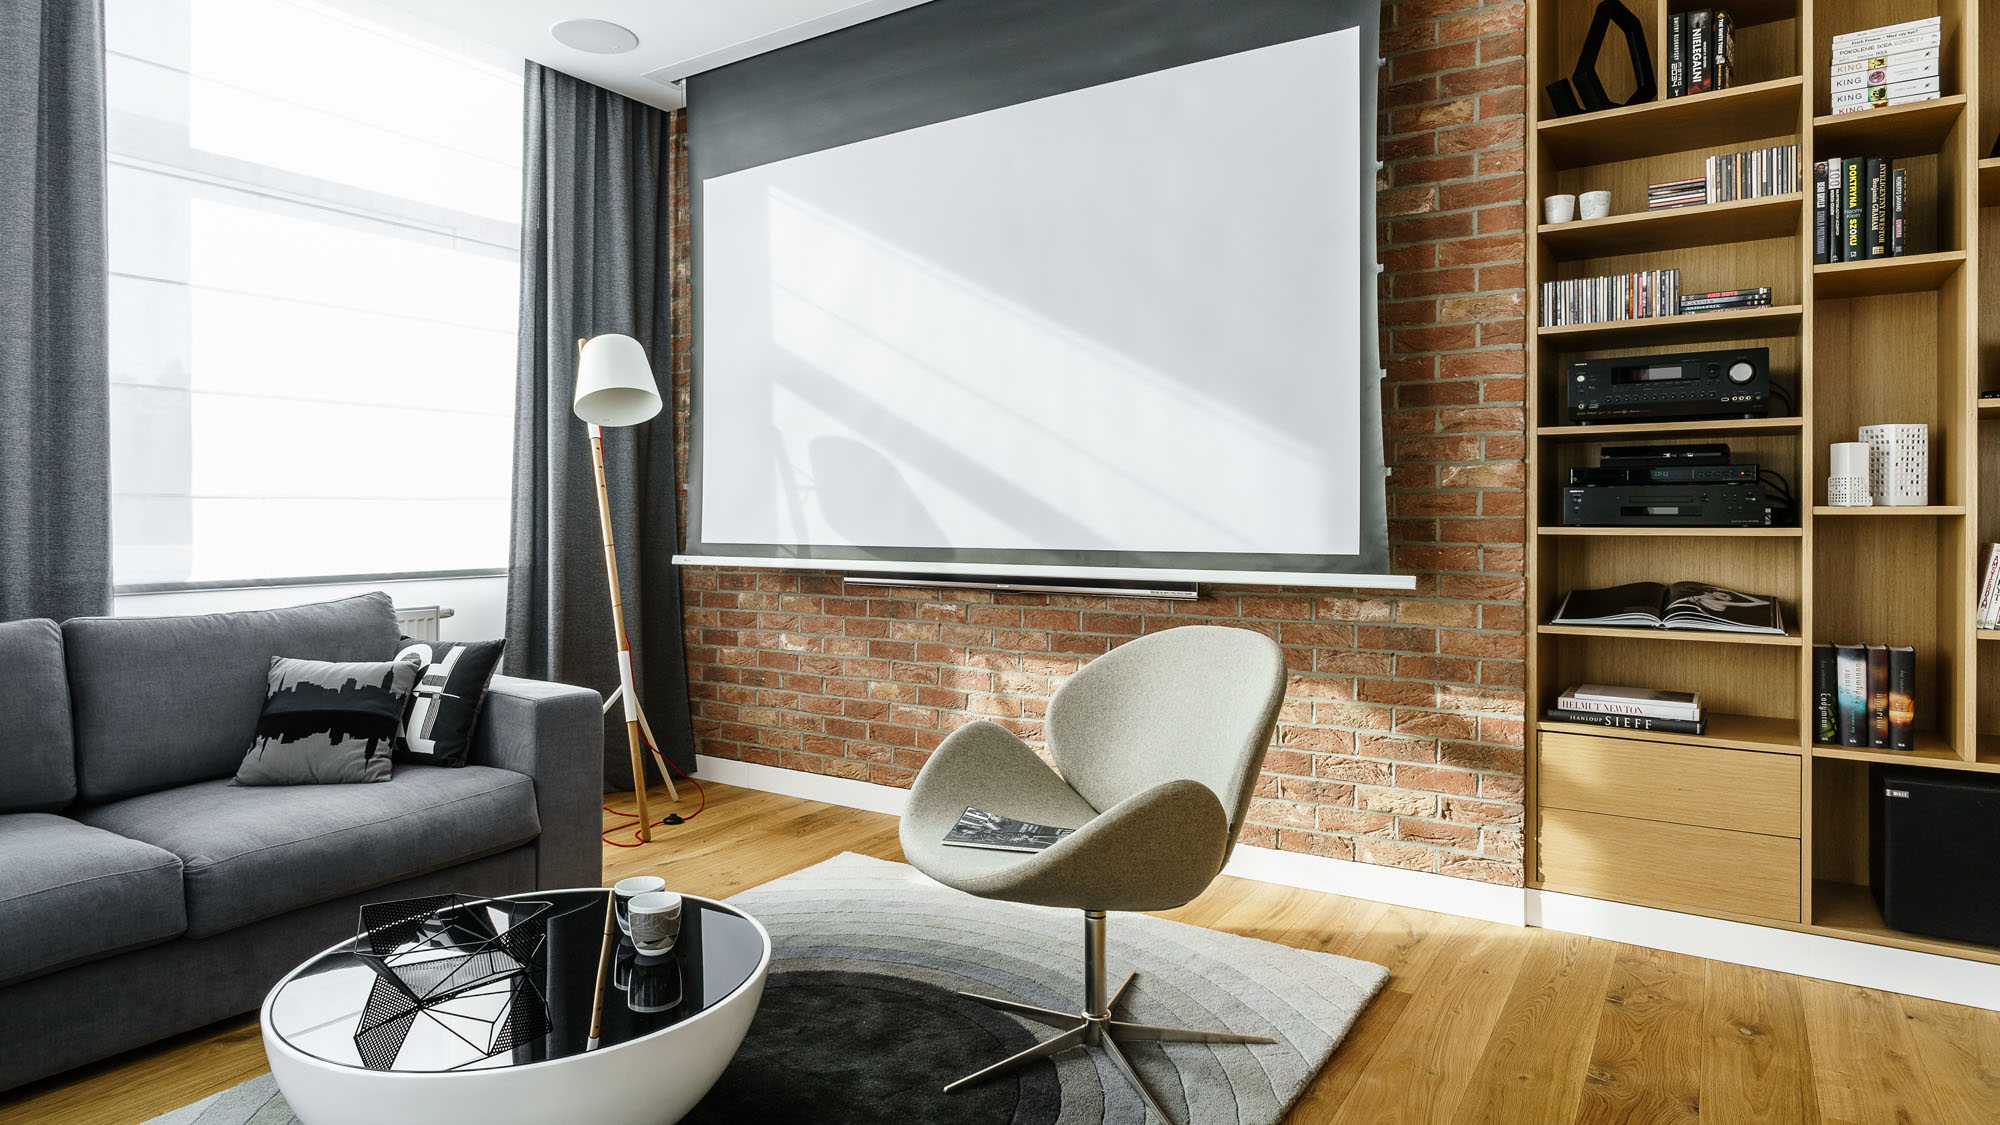 Modern Metallic, Wooden, White Theme Three Bedroom Apartment in Gdynia by Dragon Art-20